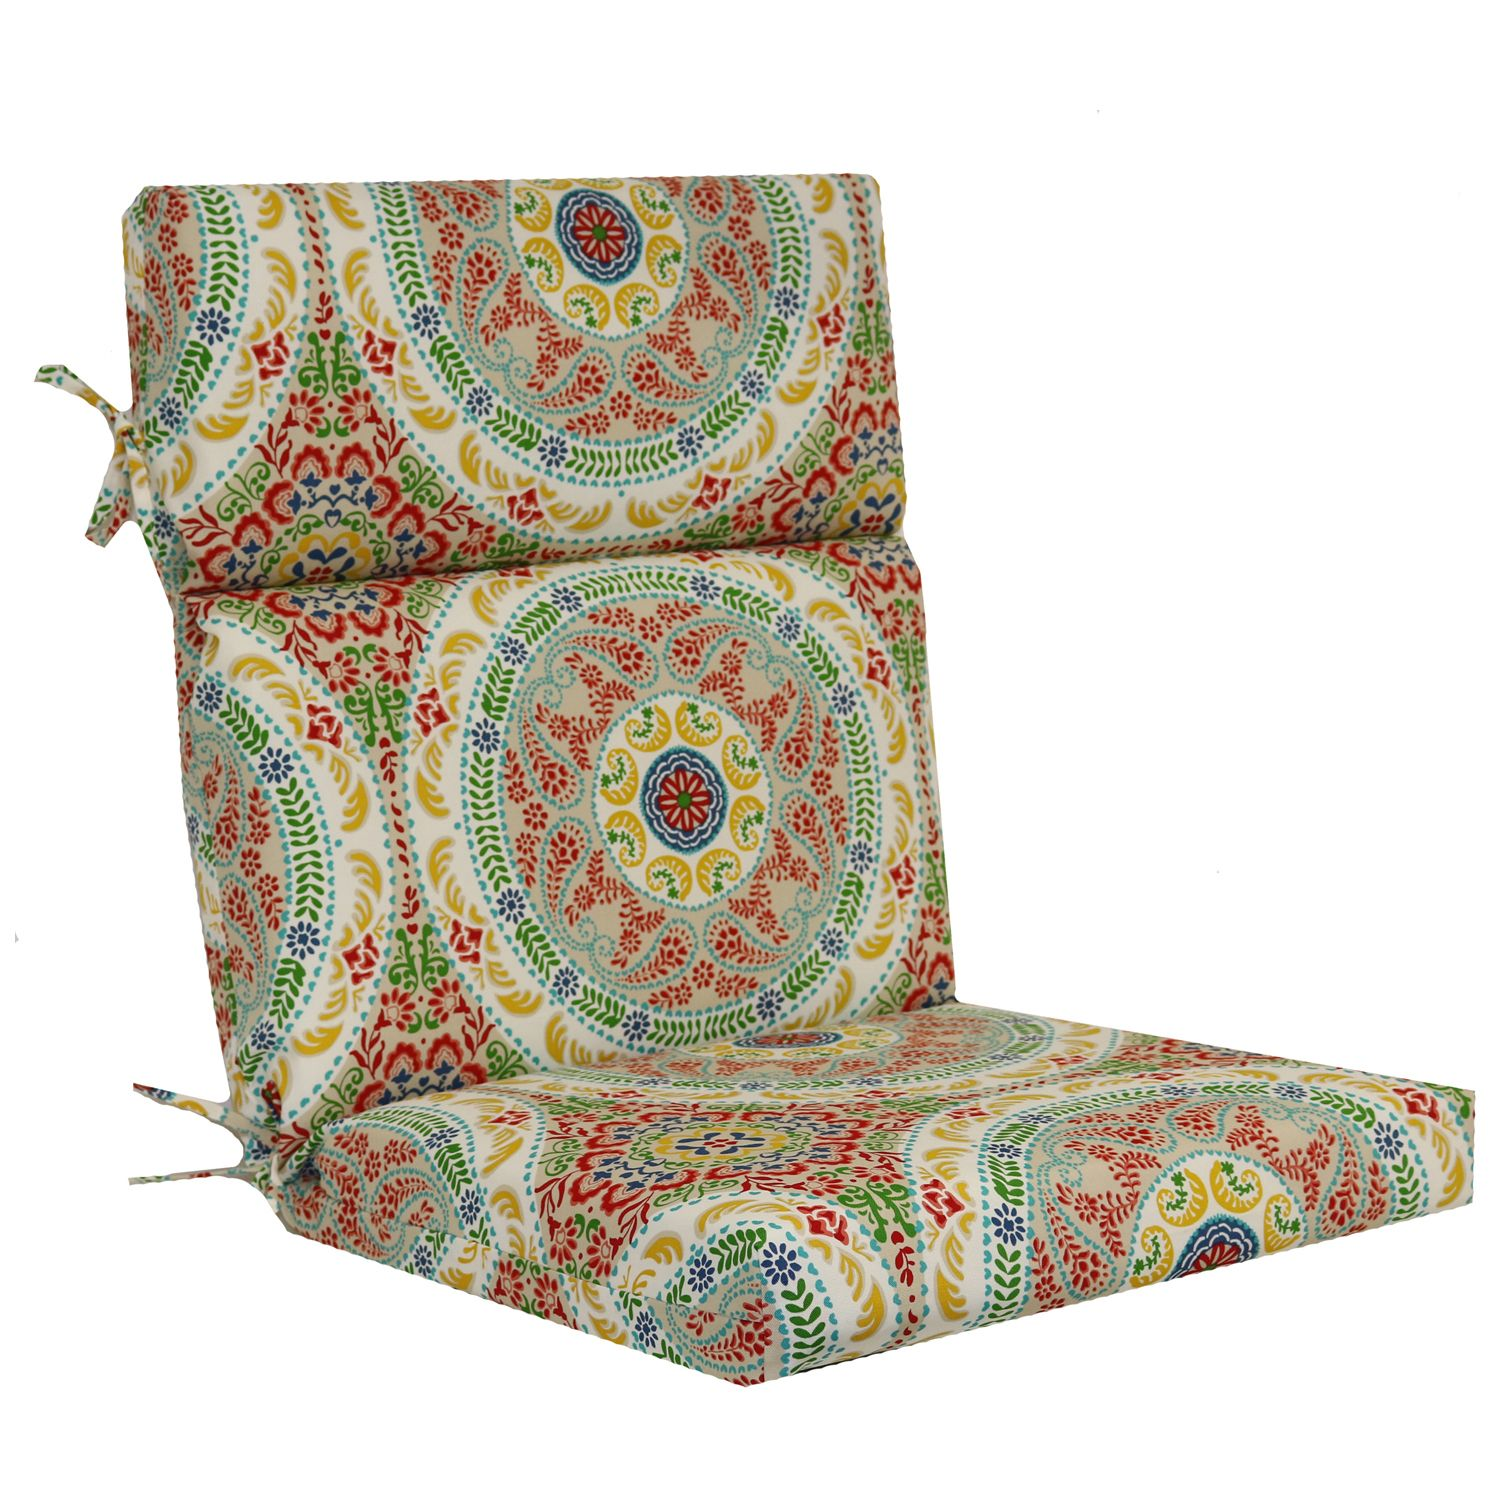 sonoma goods for life indoor outdoor reversible chair cushion